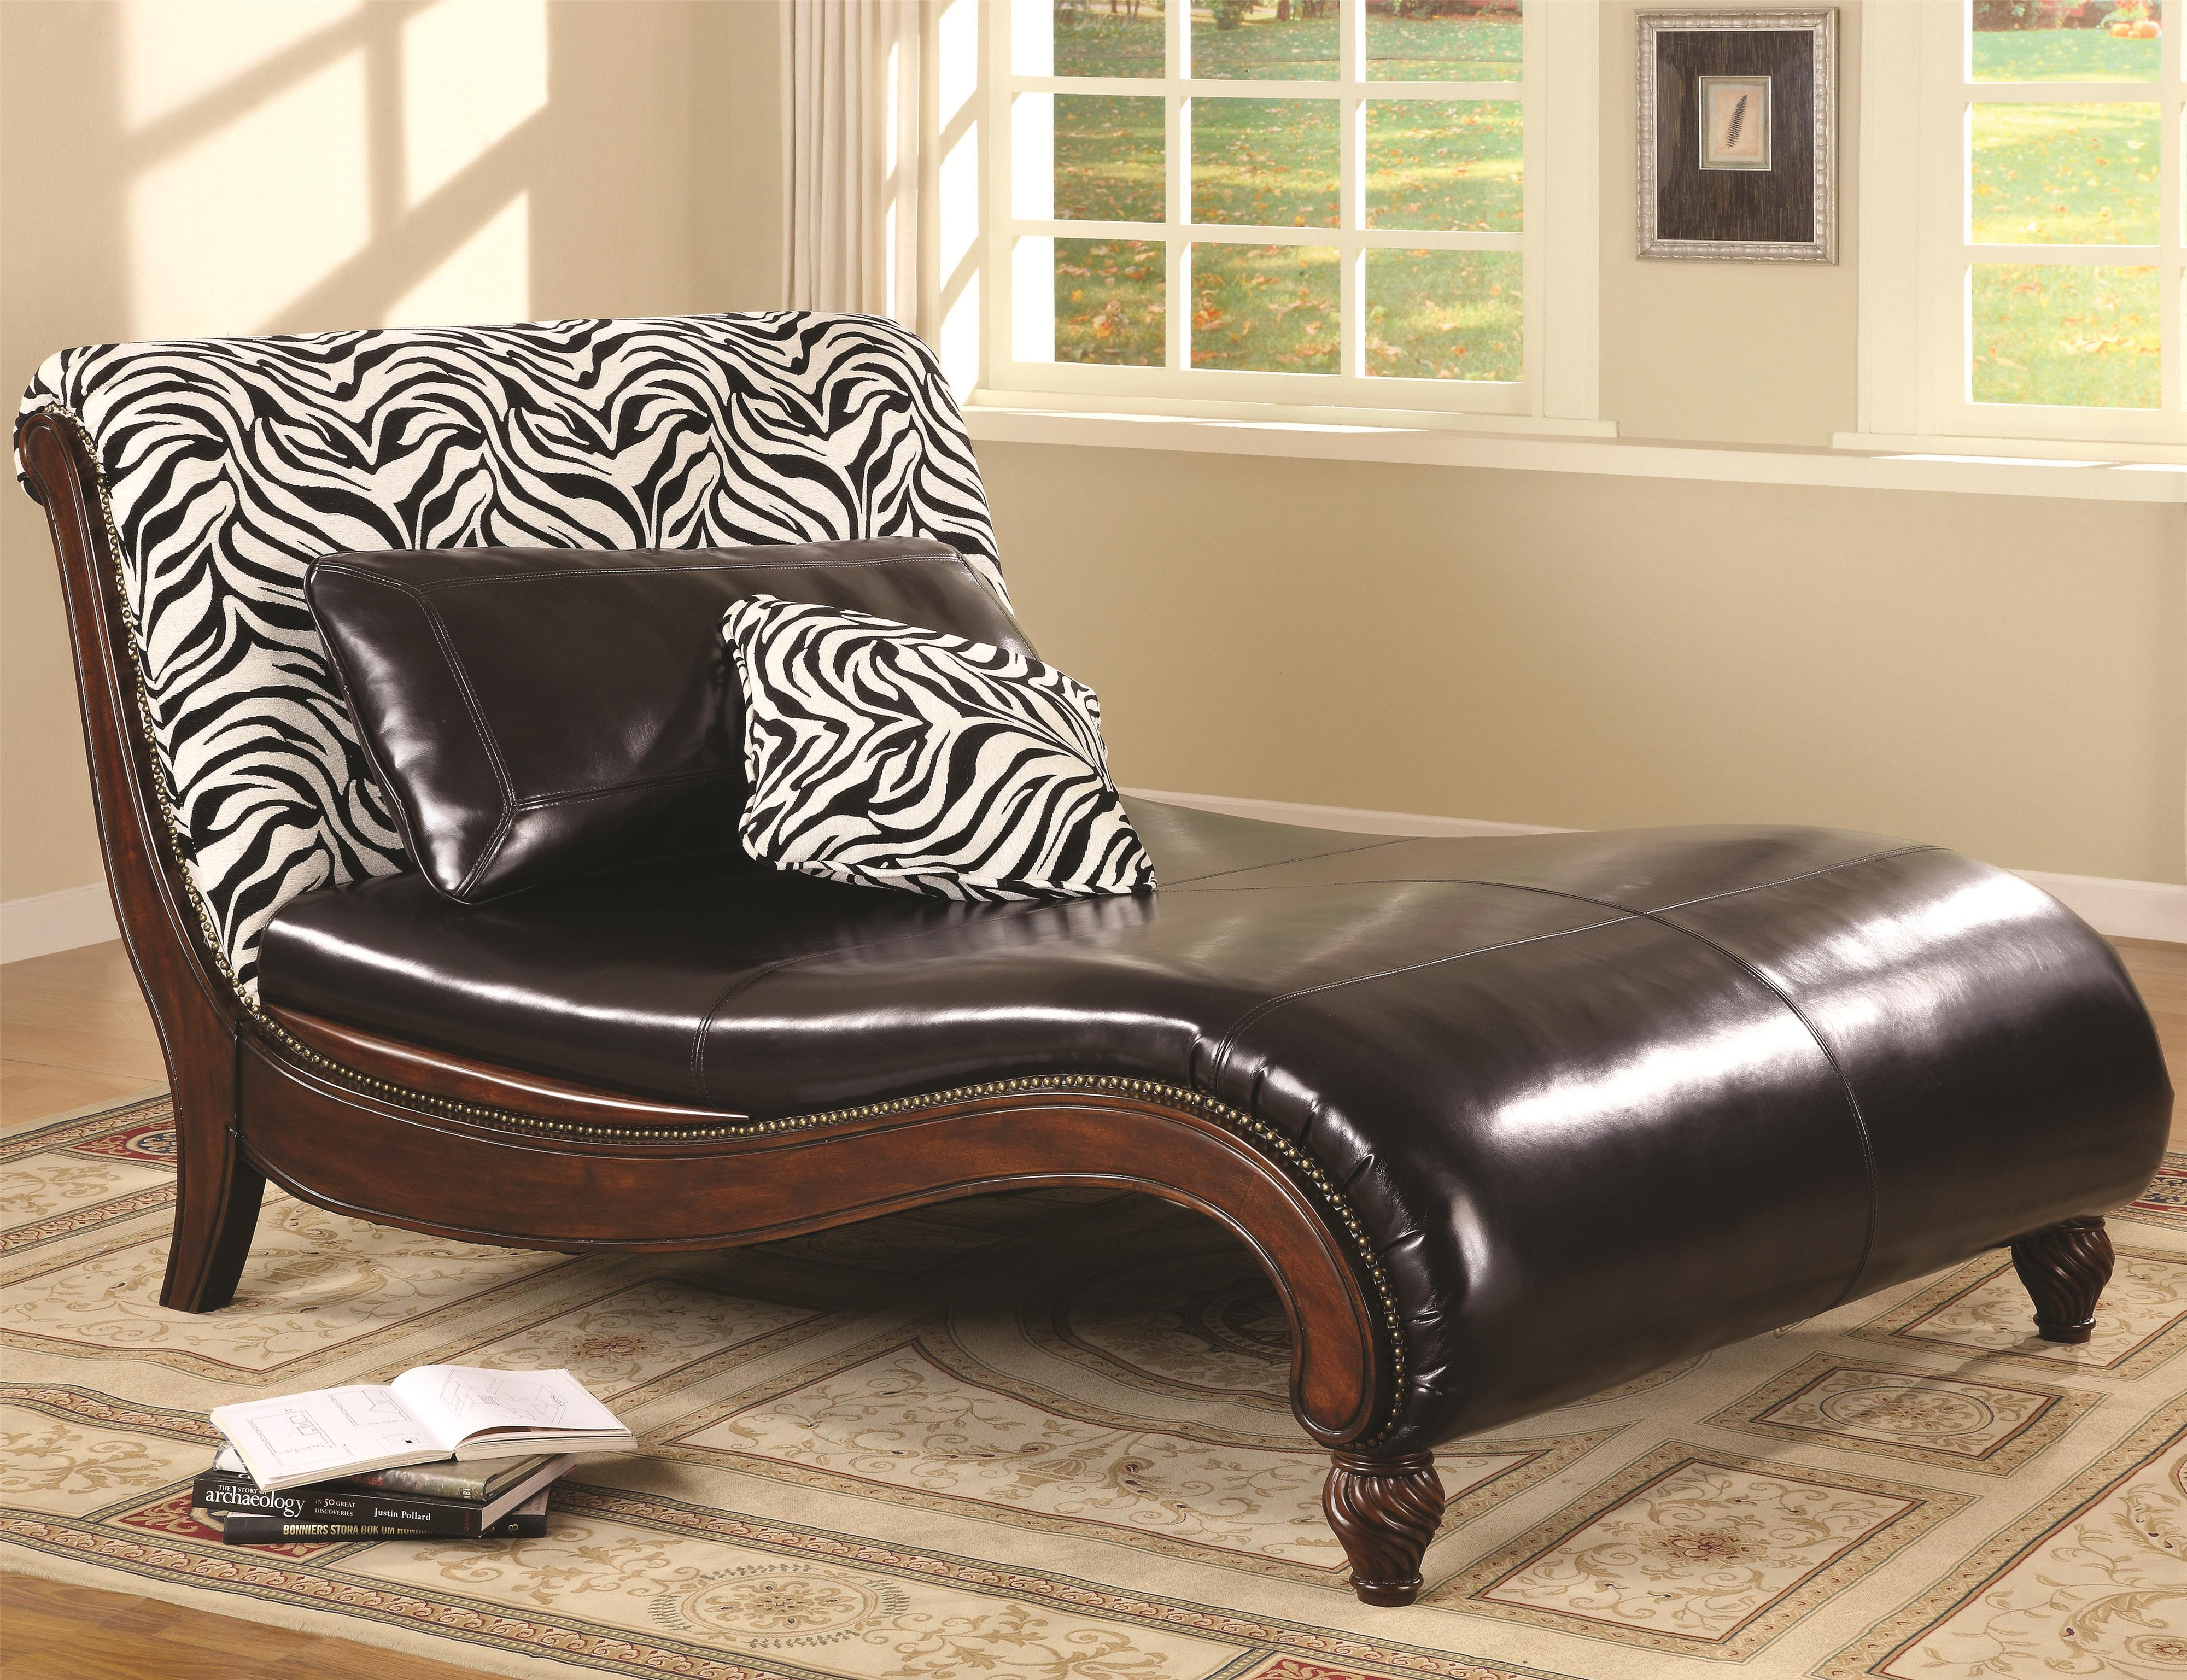 Elegant Sleigh Lounge Beds Animal Print Accents (View 7 of 12)